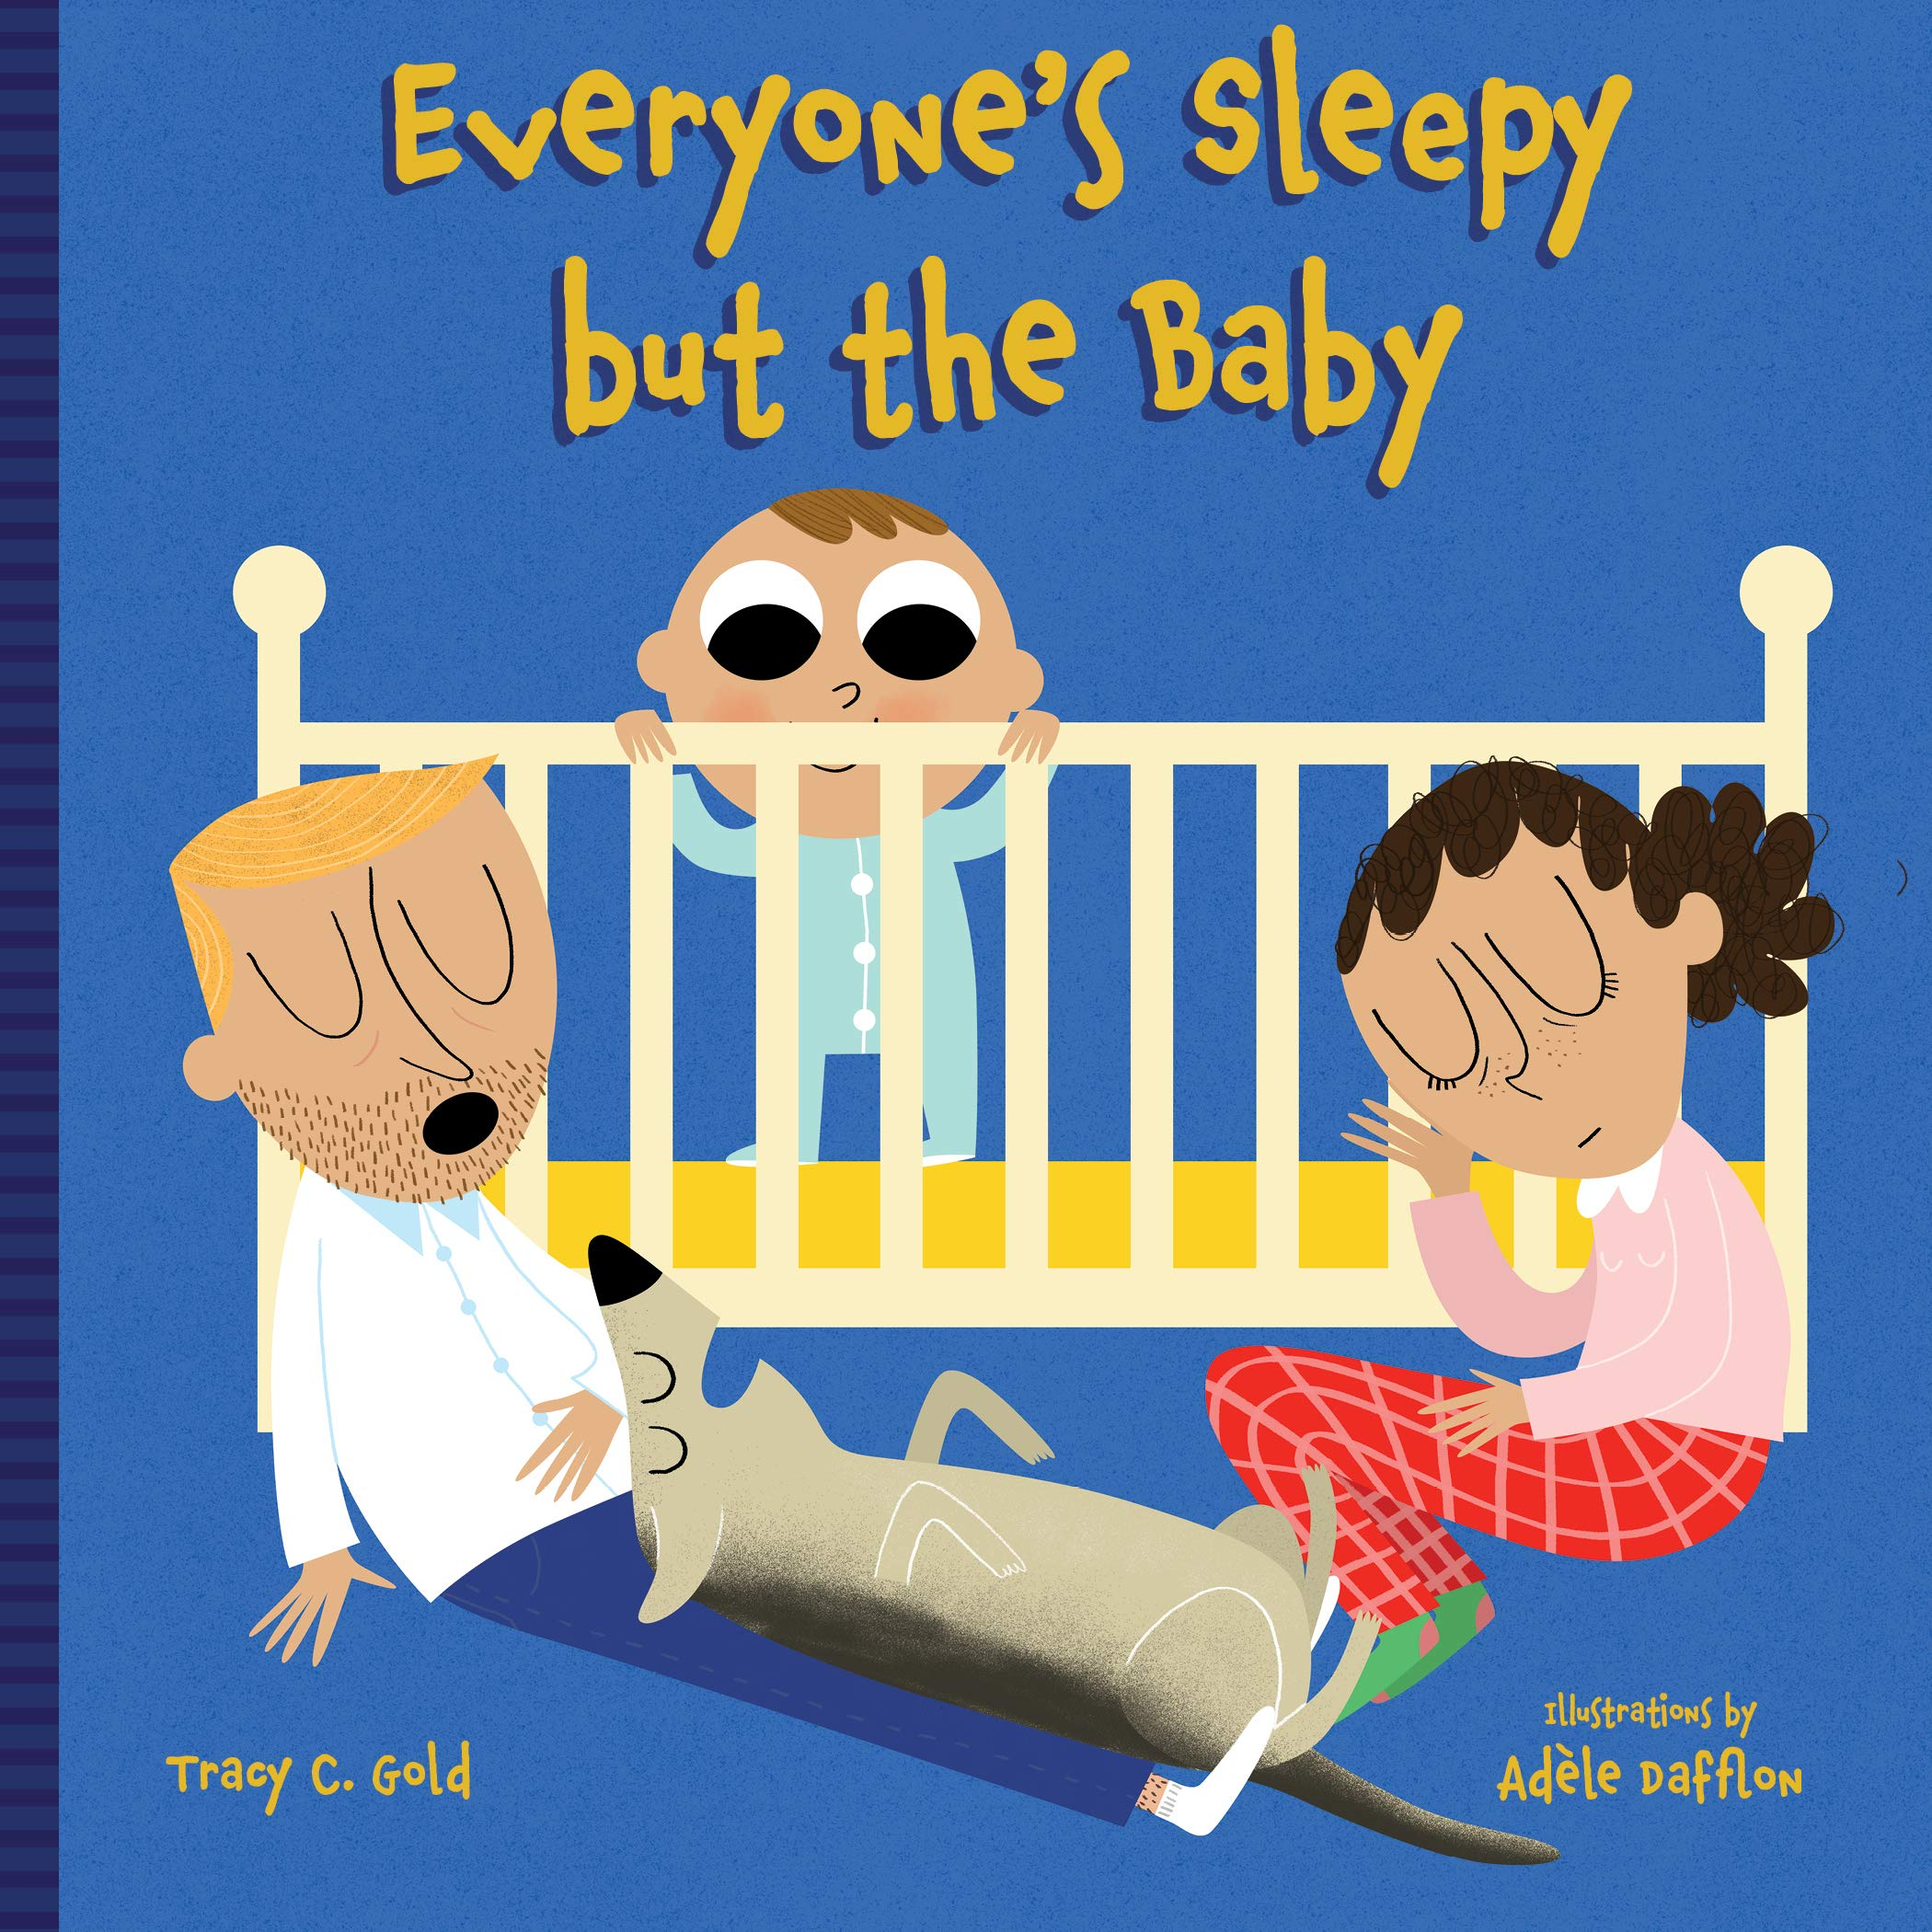 celebrate-picture-books-picture-book-review-everyone's-sleepy-but-the-baby-cover